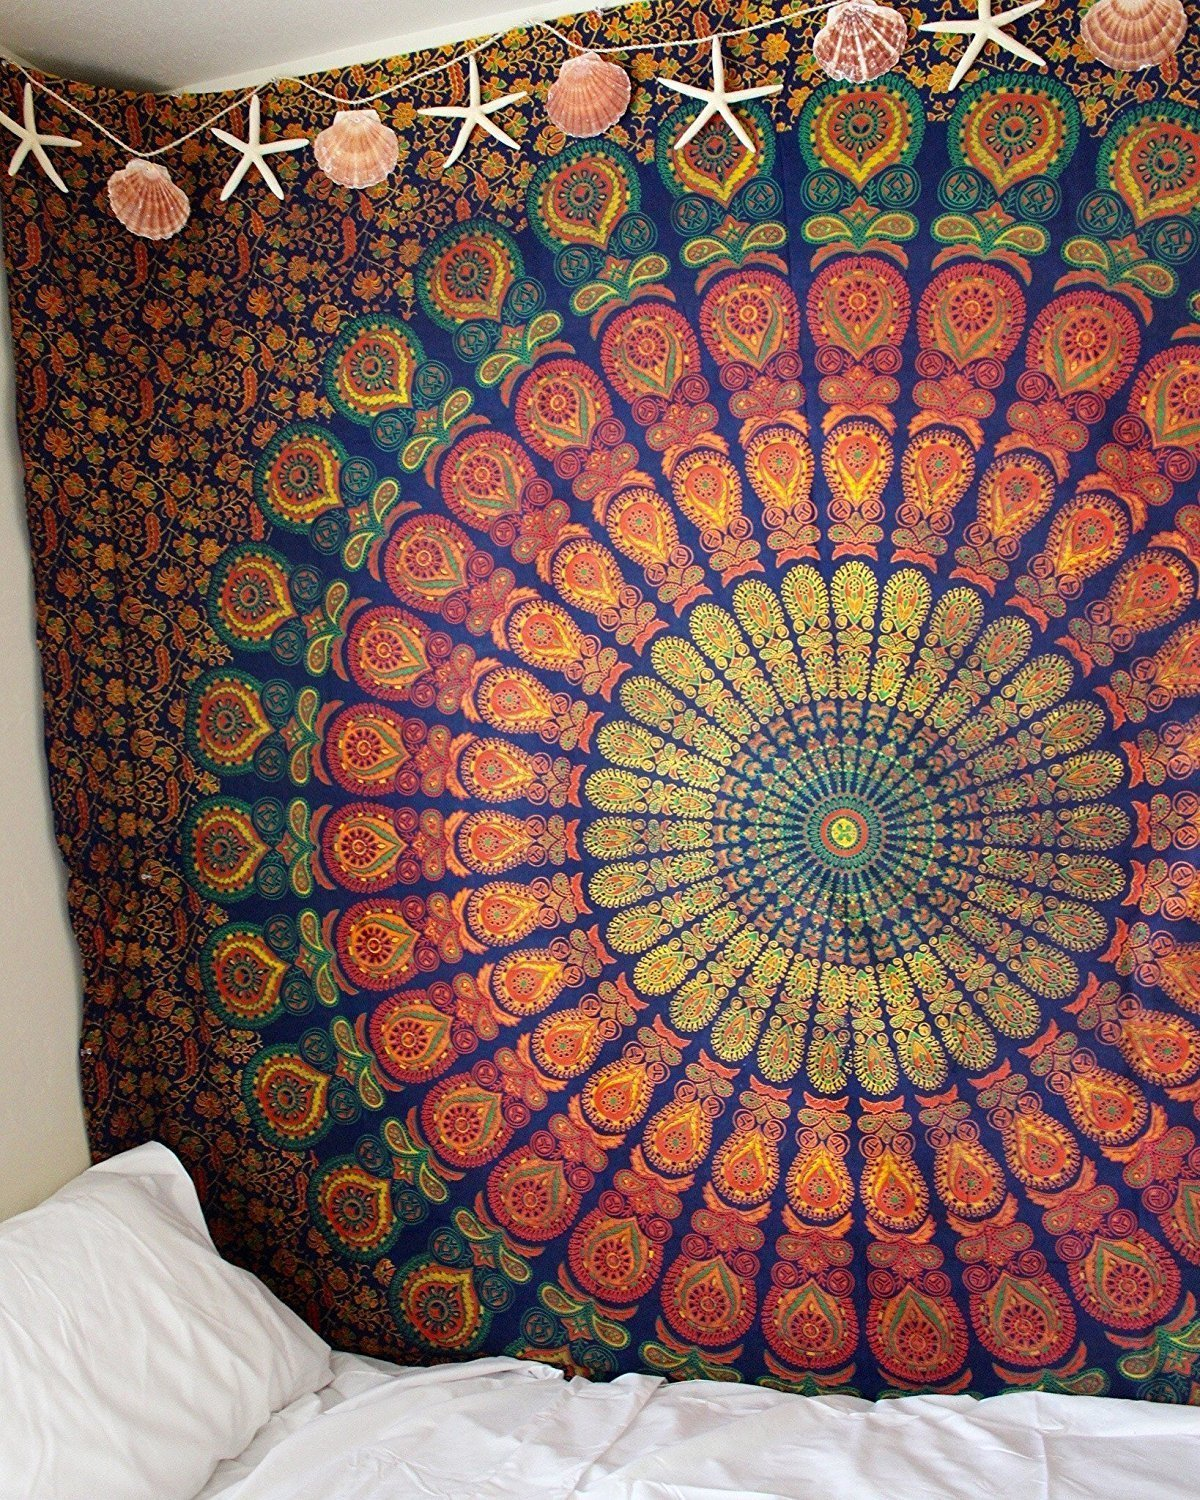 Marubhumi® Indian Traditional Hippie Cotton Tapestry, Turquoise Dreams Boho Hippie Beach Coverlet Curtain, Wall Hanging,Bohemian Wall Hanging, 215 x 140 CM